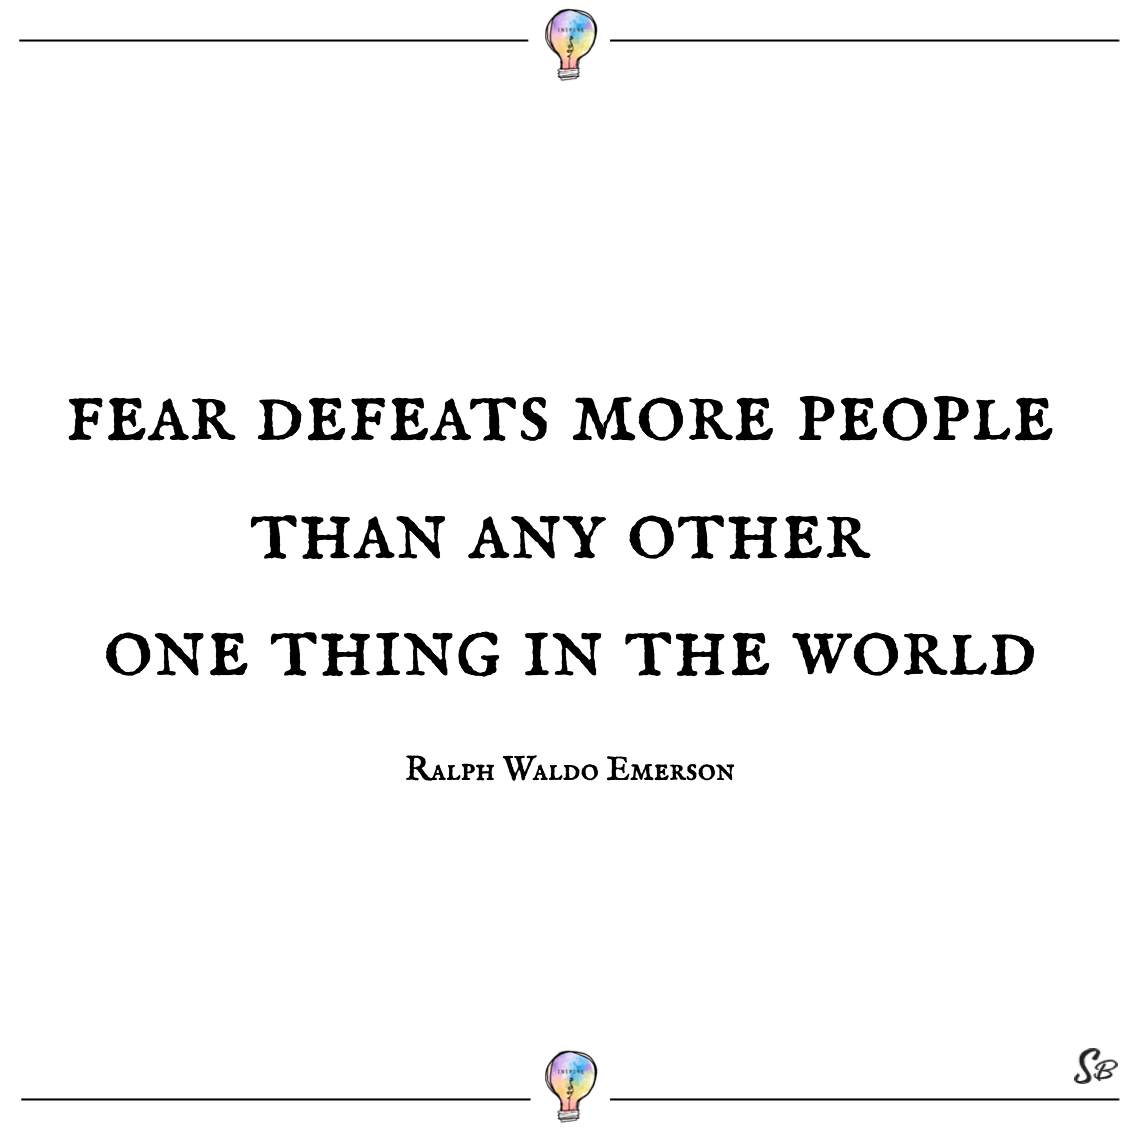 Fear defeats more people than any other one thing in the world ralph waldo emerson